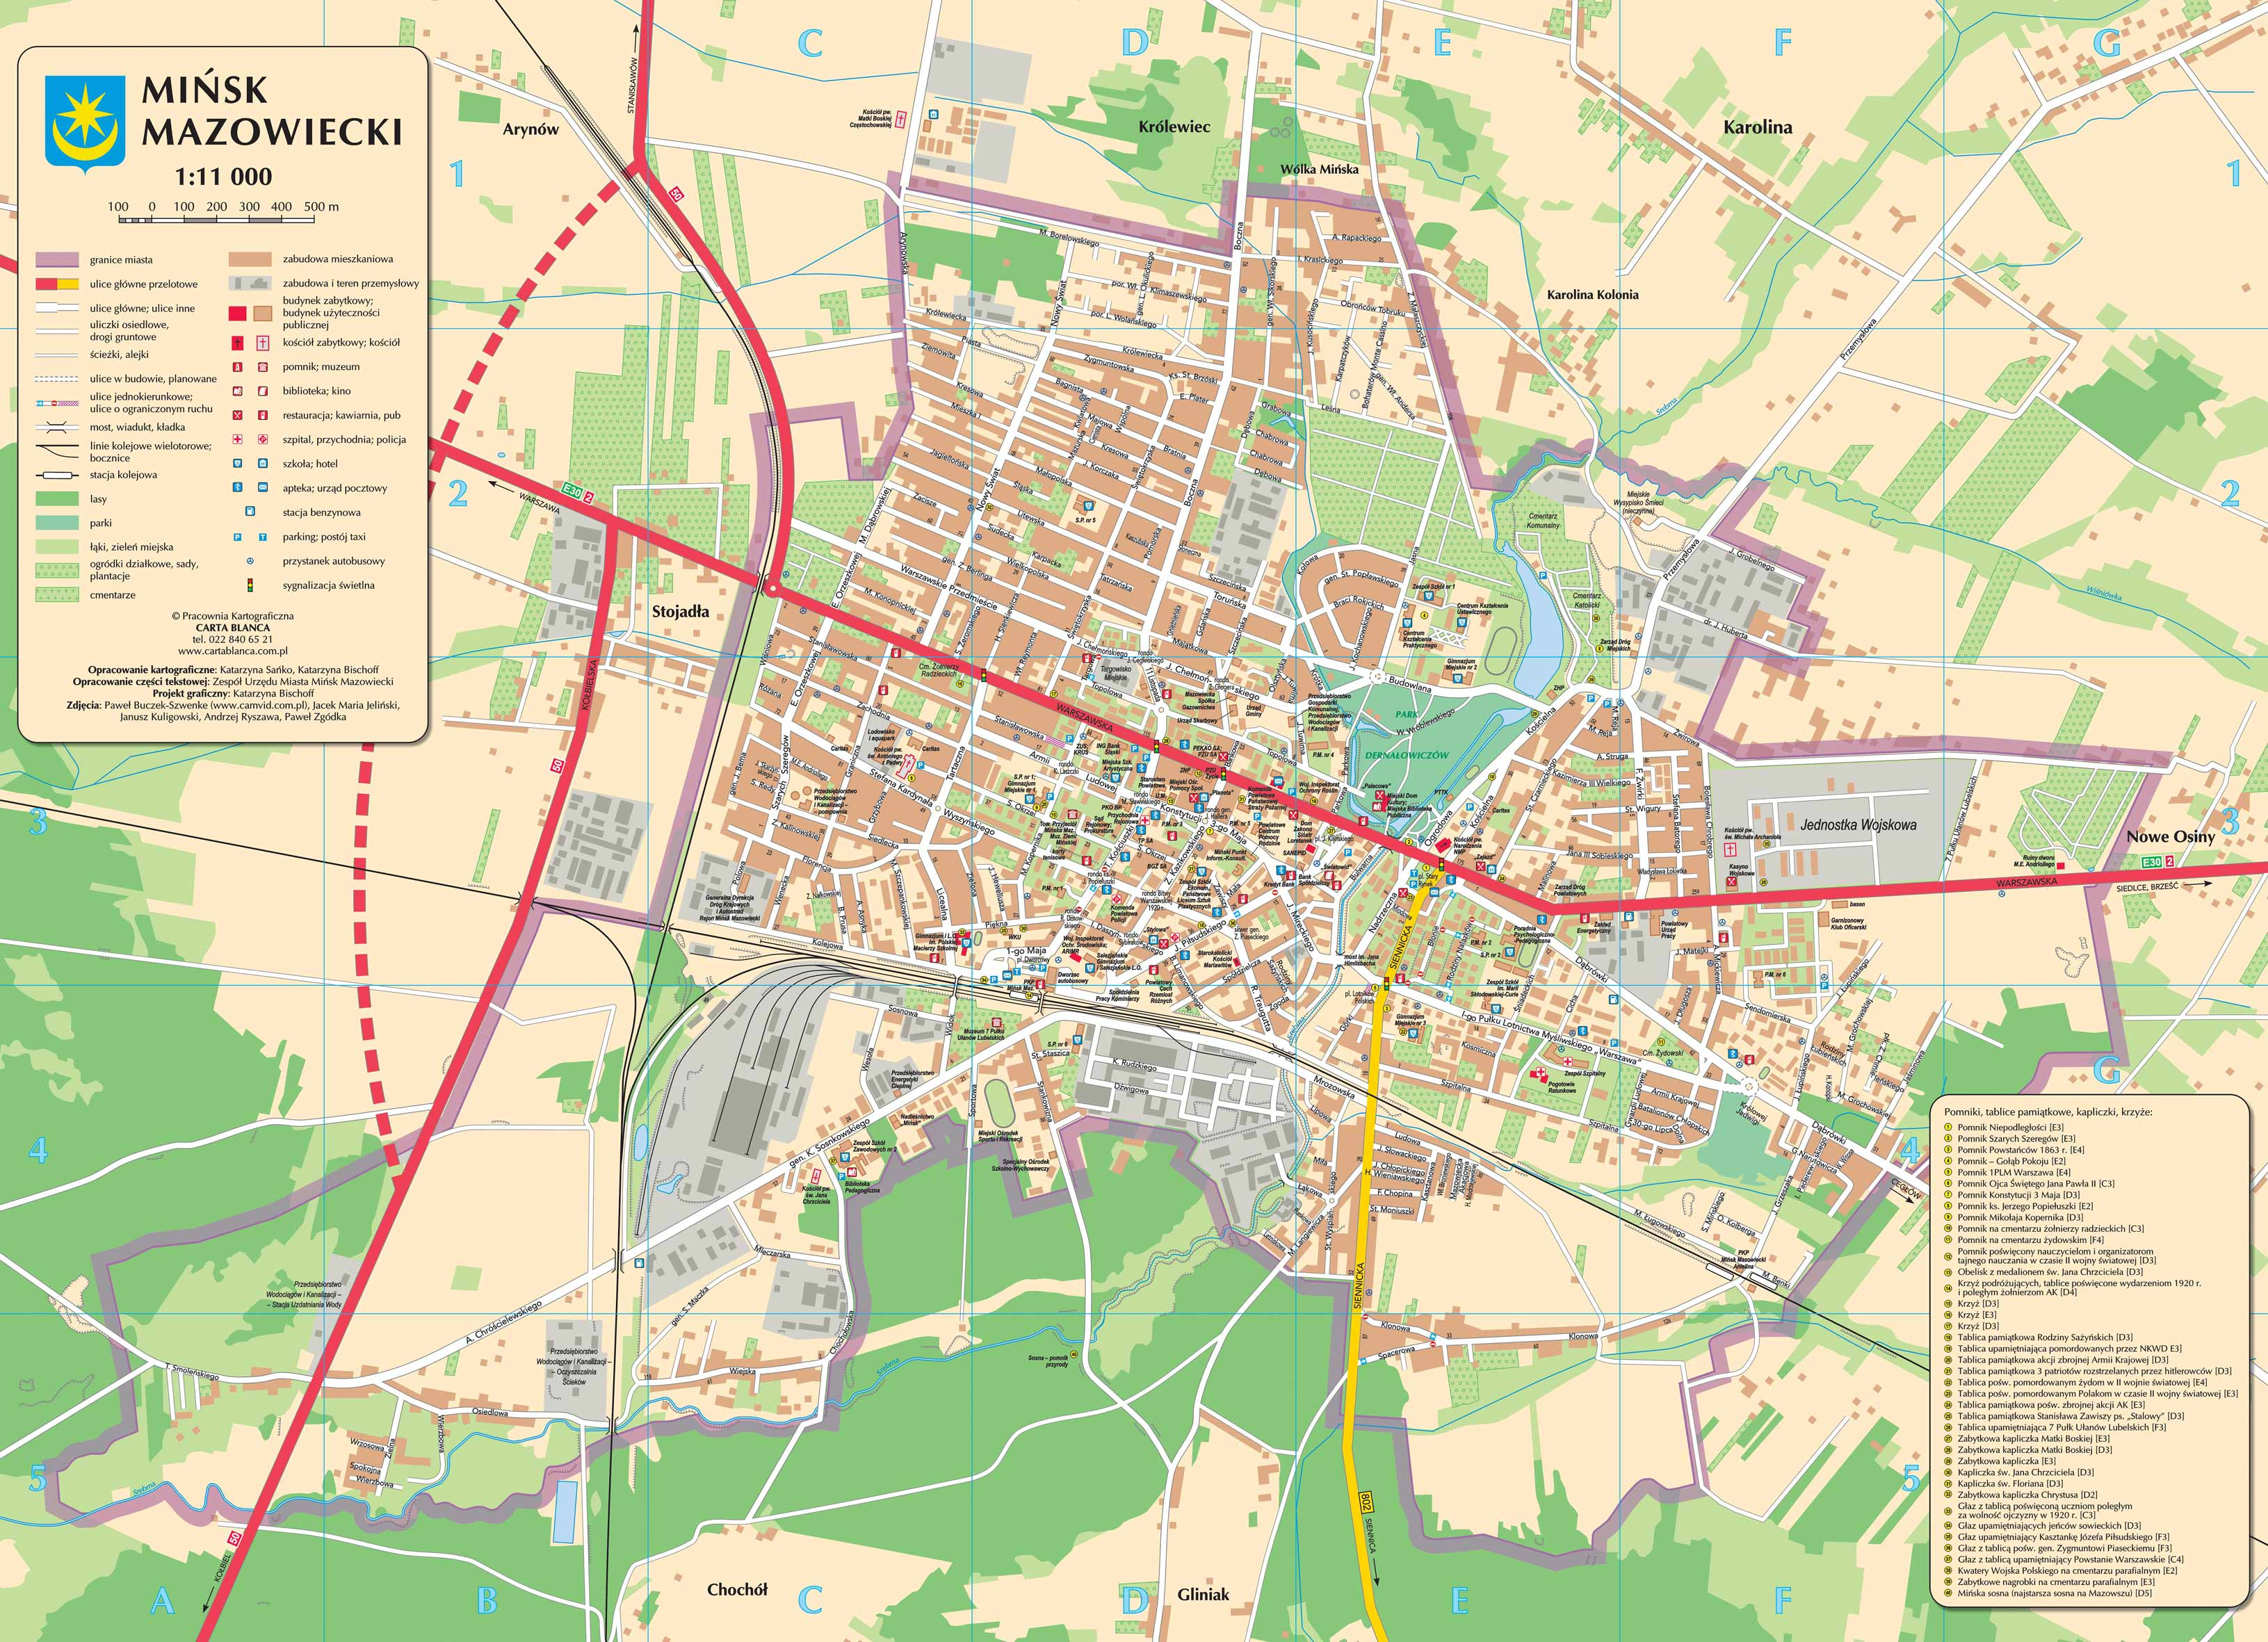 Large Minsk Maps for Free Download | High-Resolution and Detailed ...